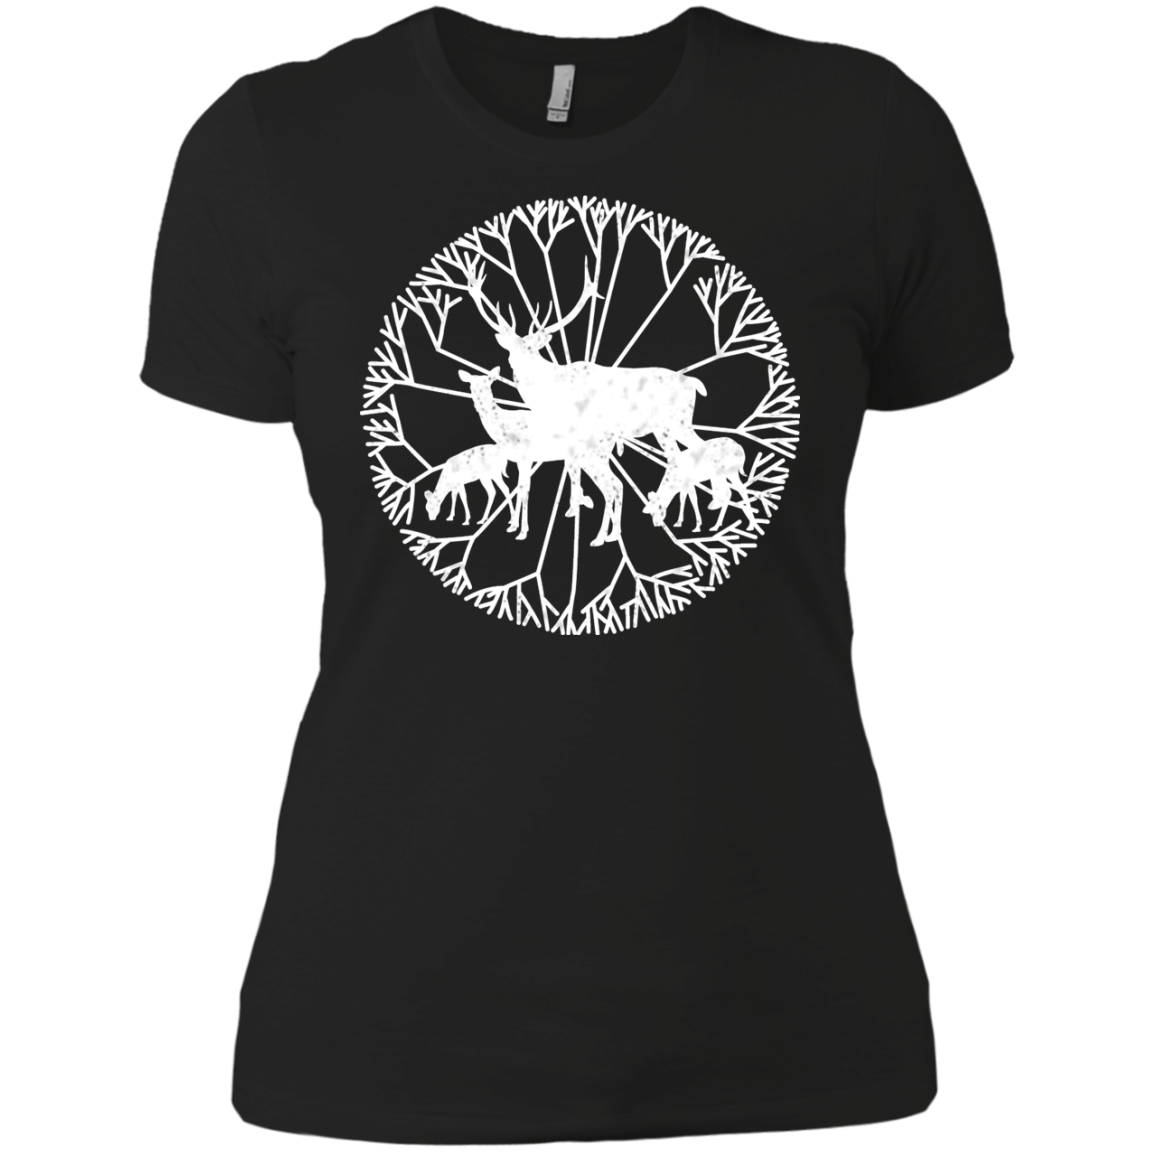 Deer Family Matching Family T-Shirts - The Sun Cat